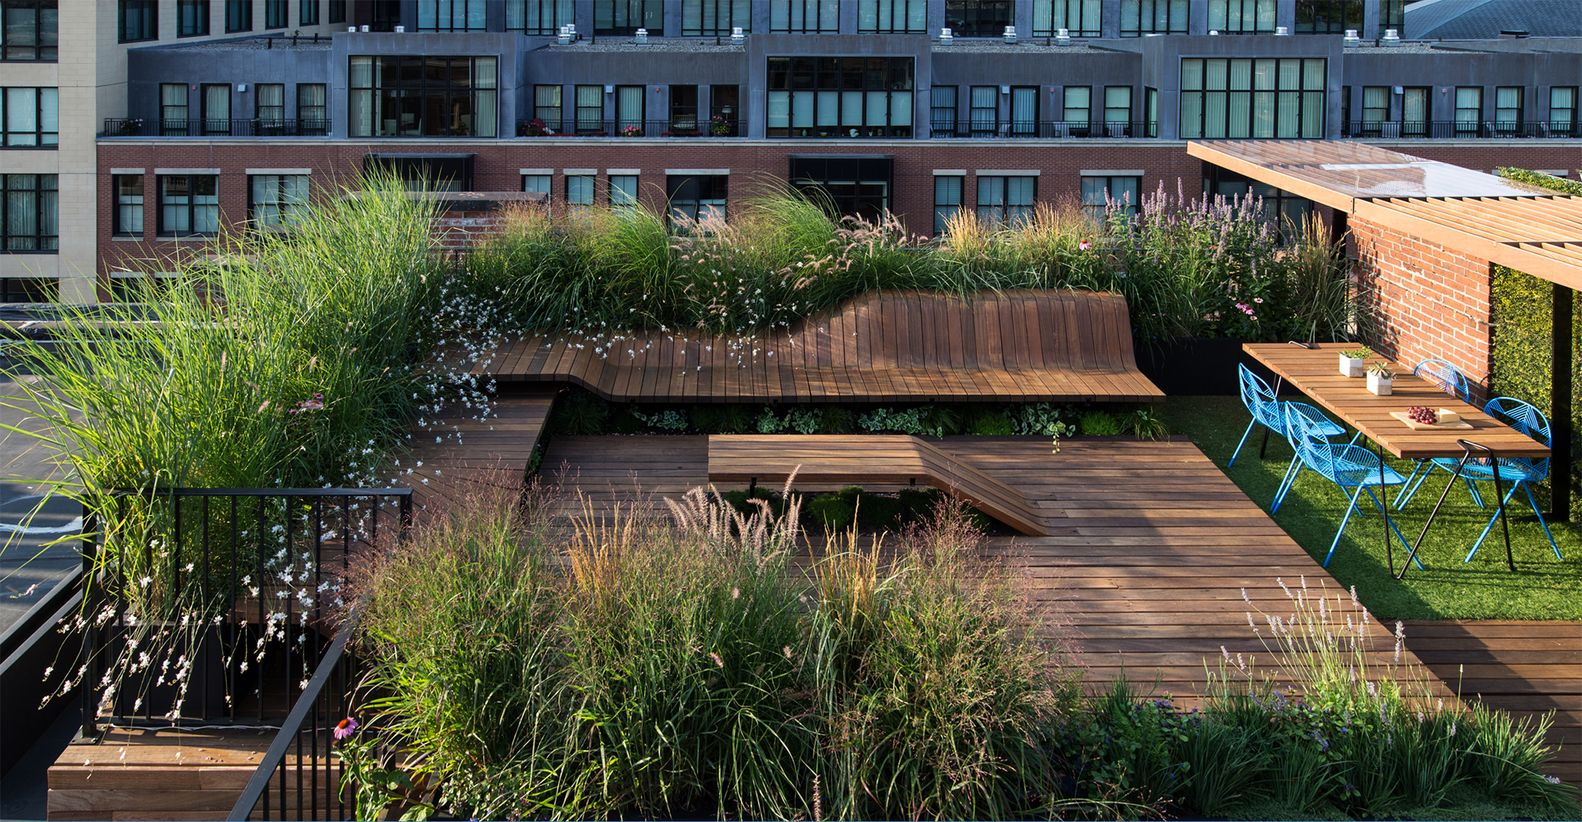 Superior Inspiring Urban Garden Designs And Their Creators